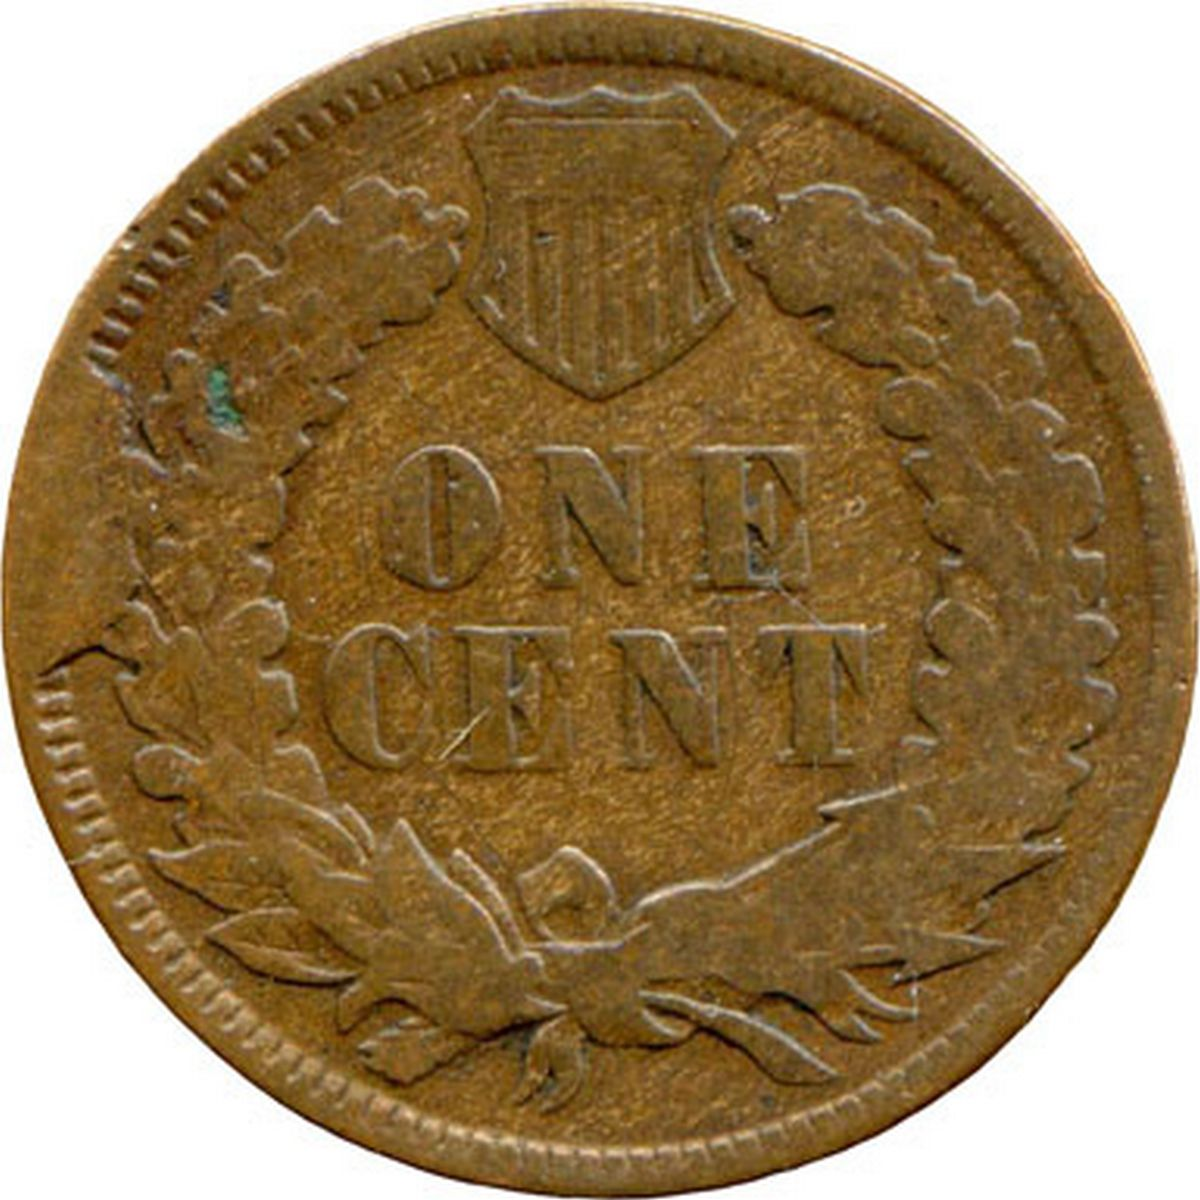 1874 CUD-003 - Indian Head Penny - Photo by David Poliquin